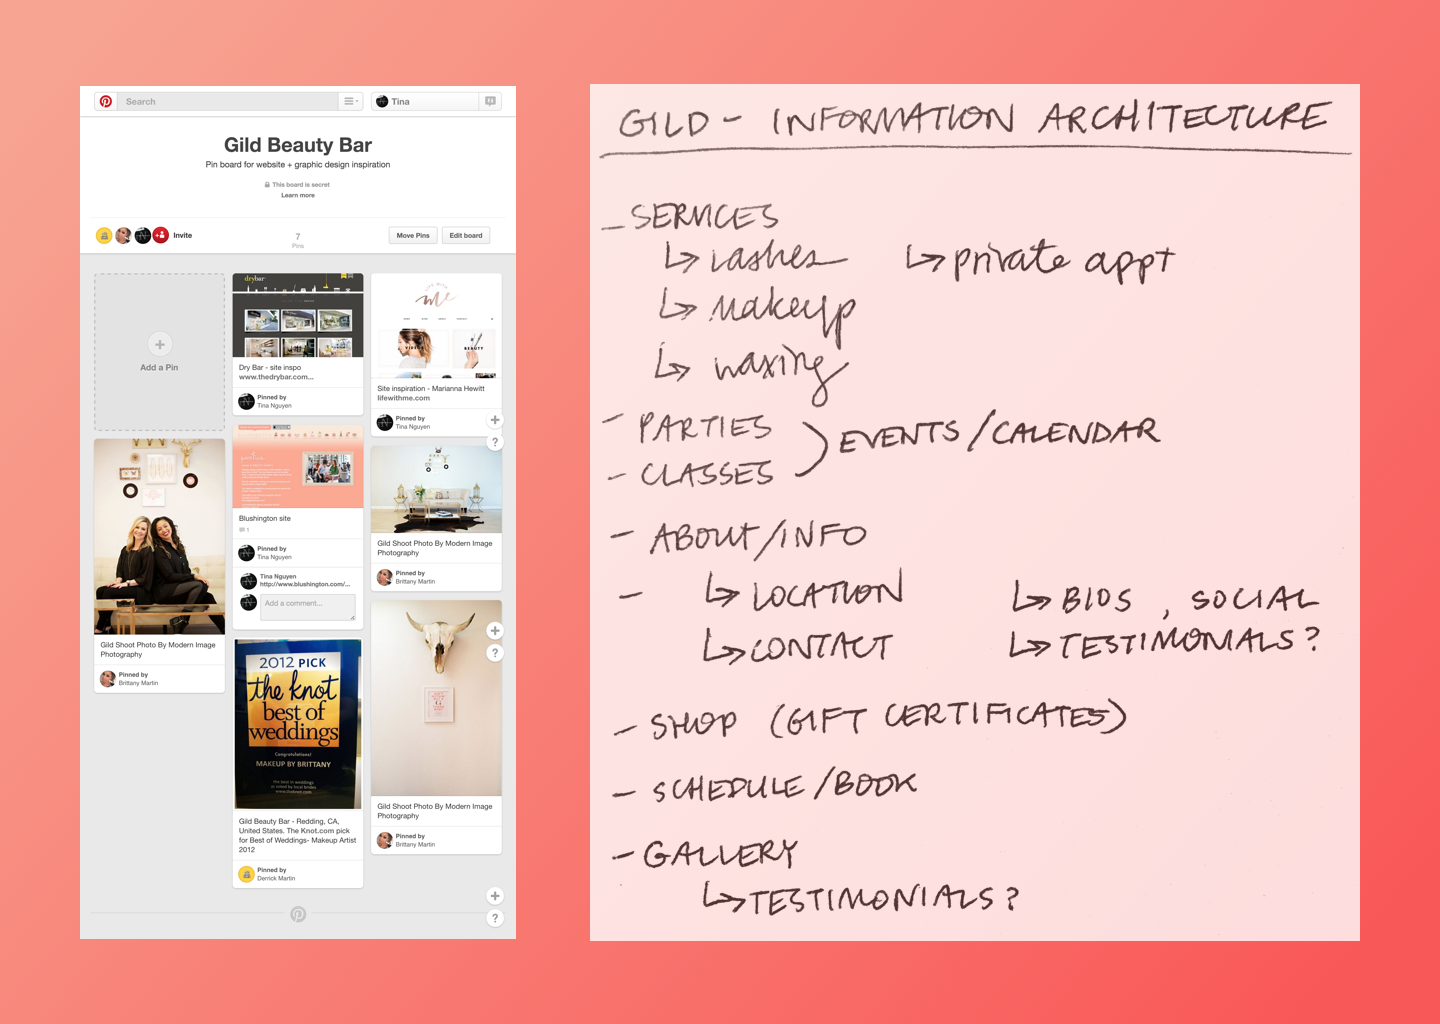 Gild Information Architecture and Research